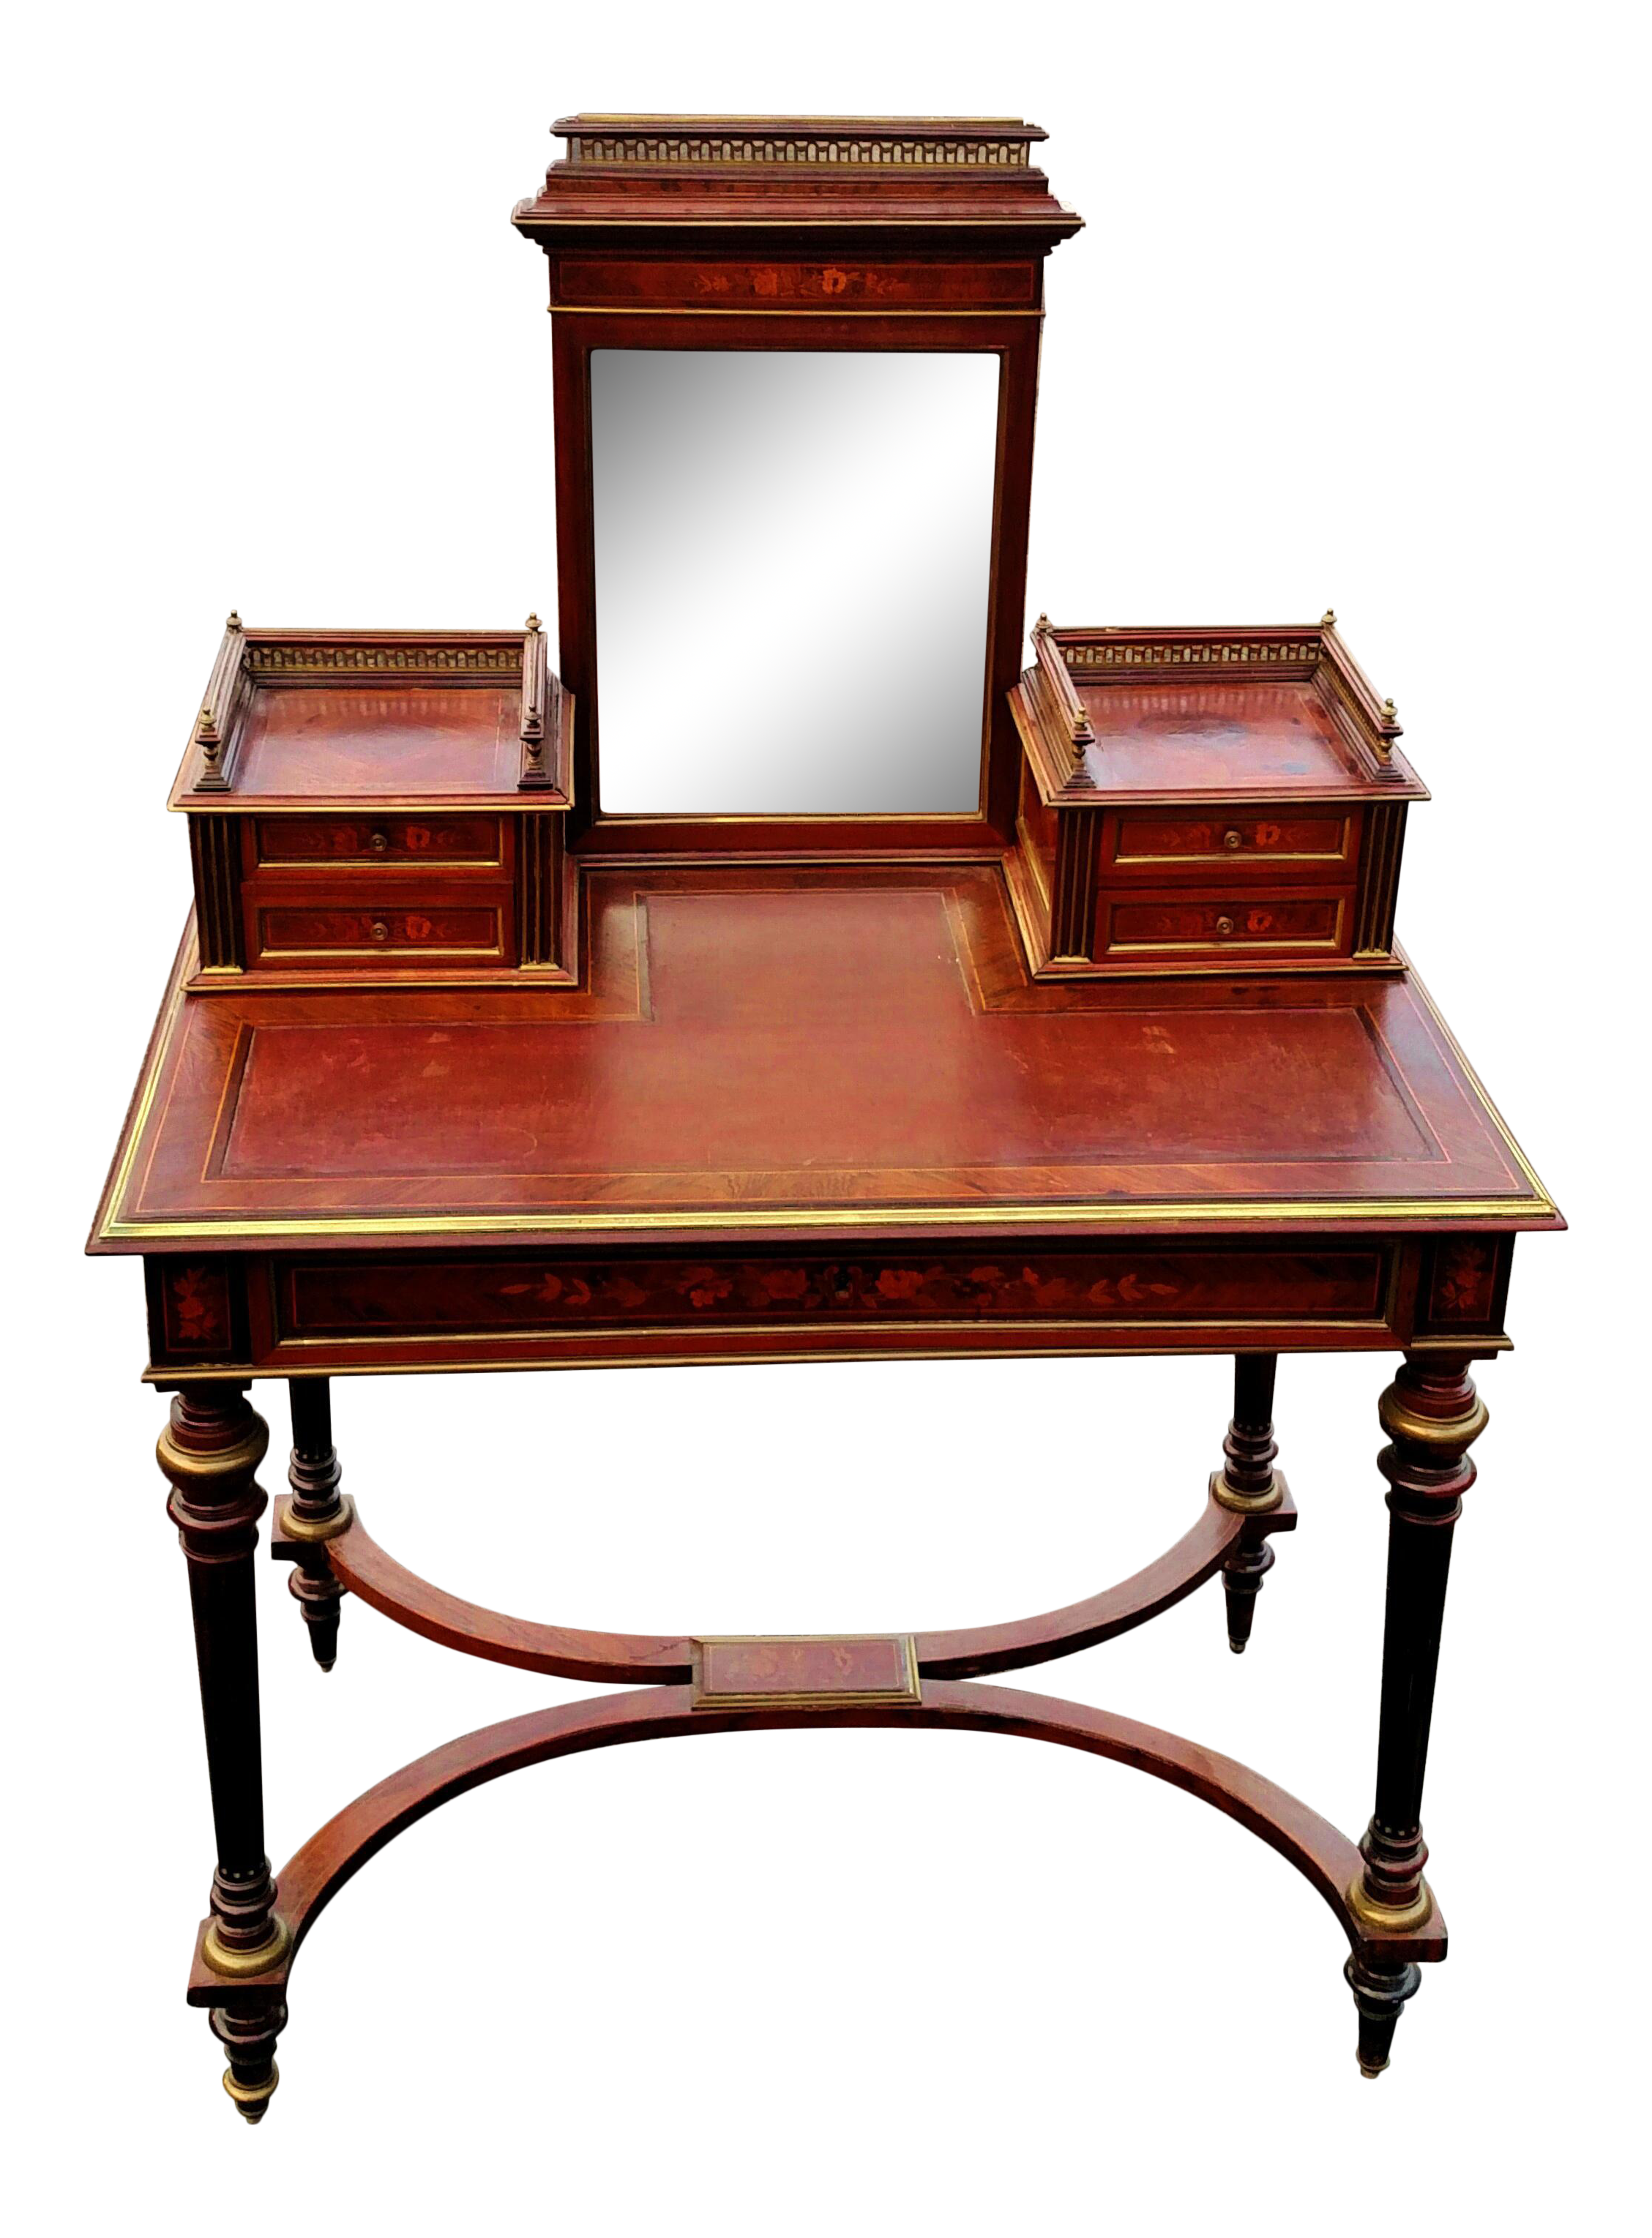 Antique 19th C French Satin Inlaid Bronze Mounted Leather Top Mirror Vanity Dressing Table Desk Chairish